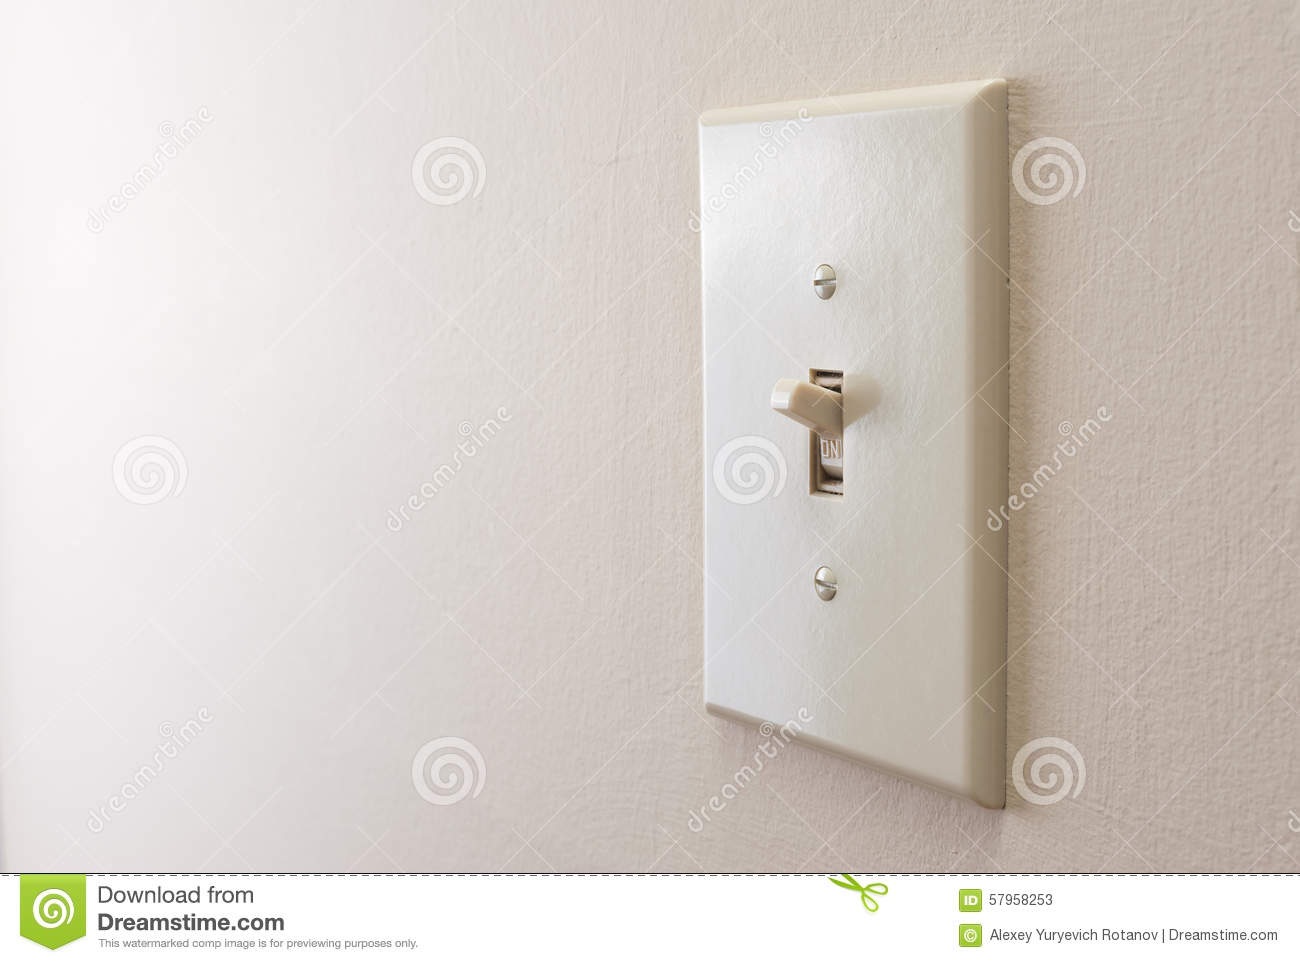 Classic Light Switch Stock Image Image Of Activate Button 57958253